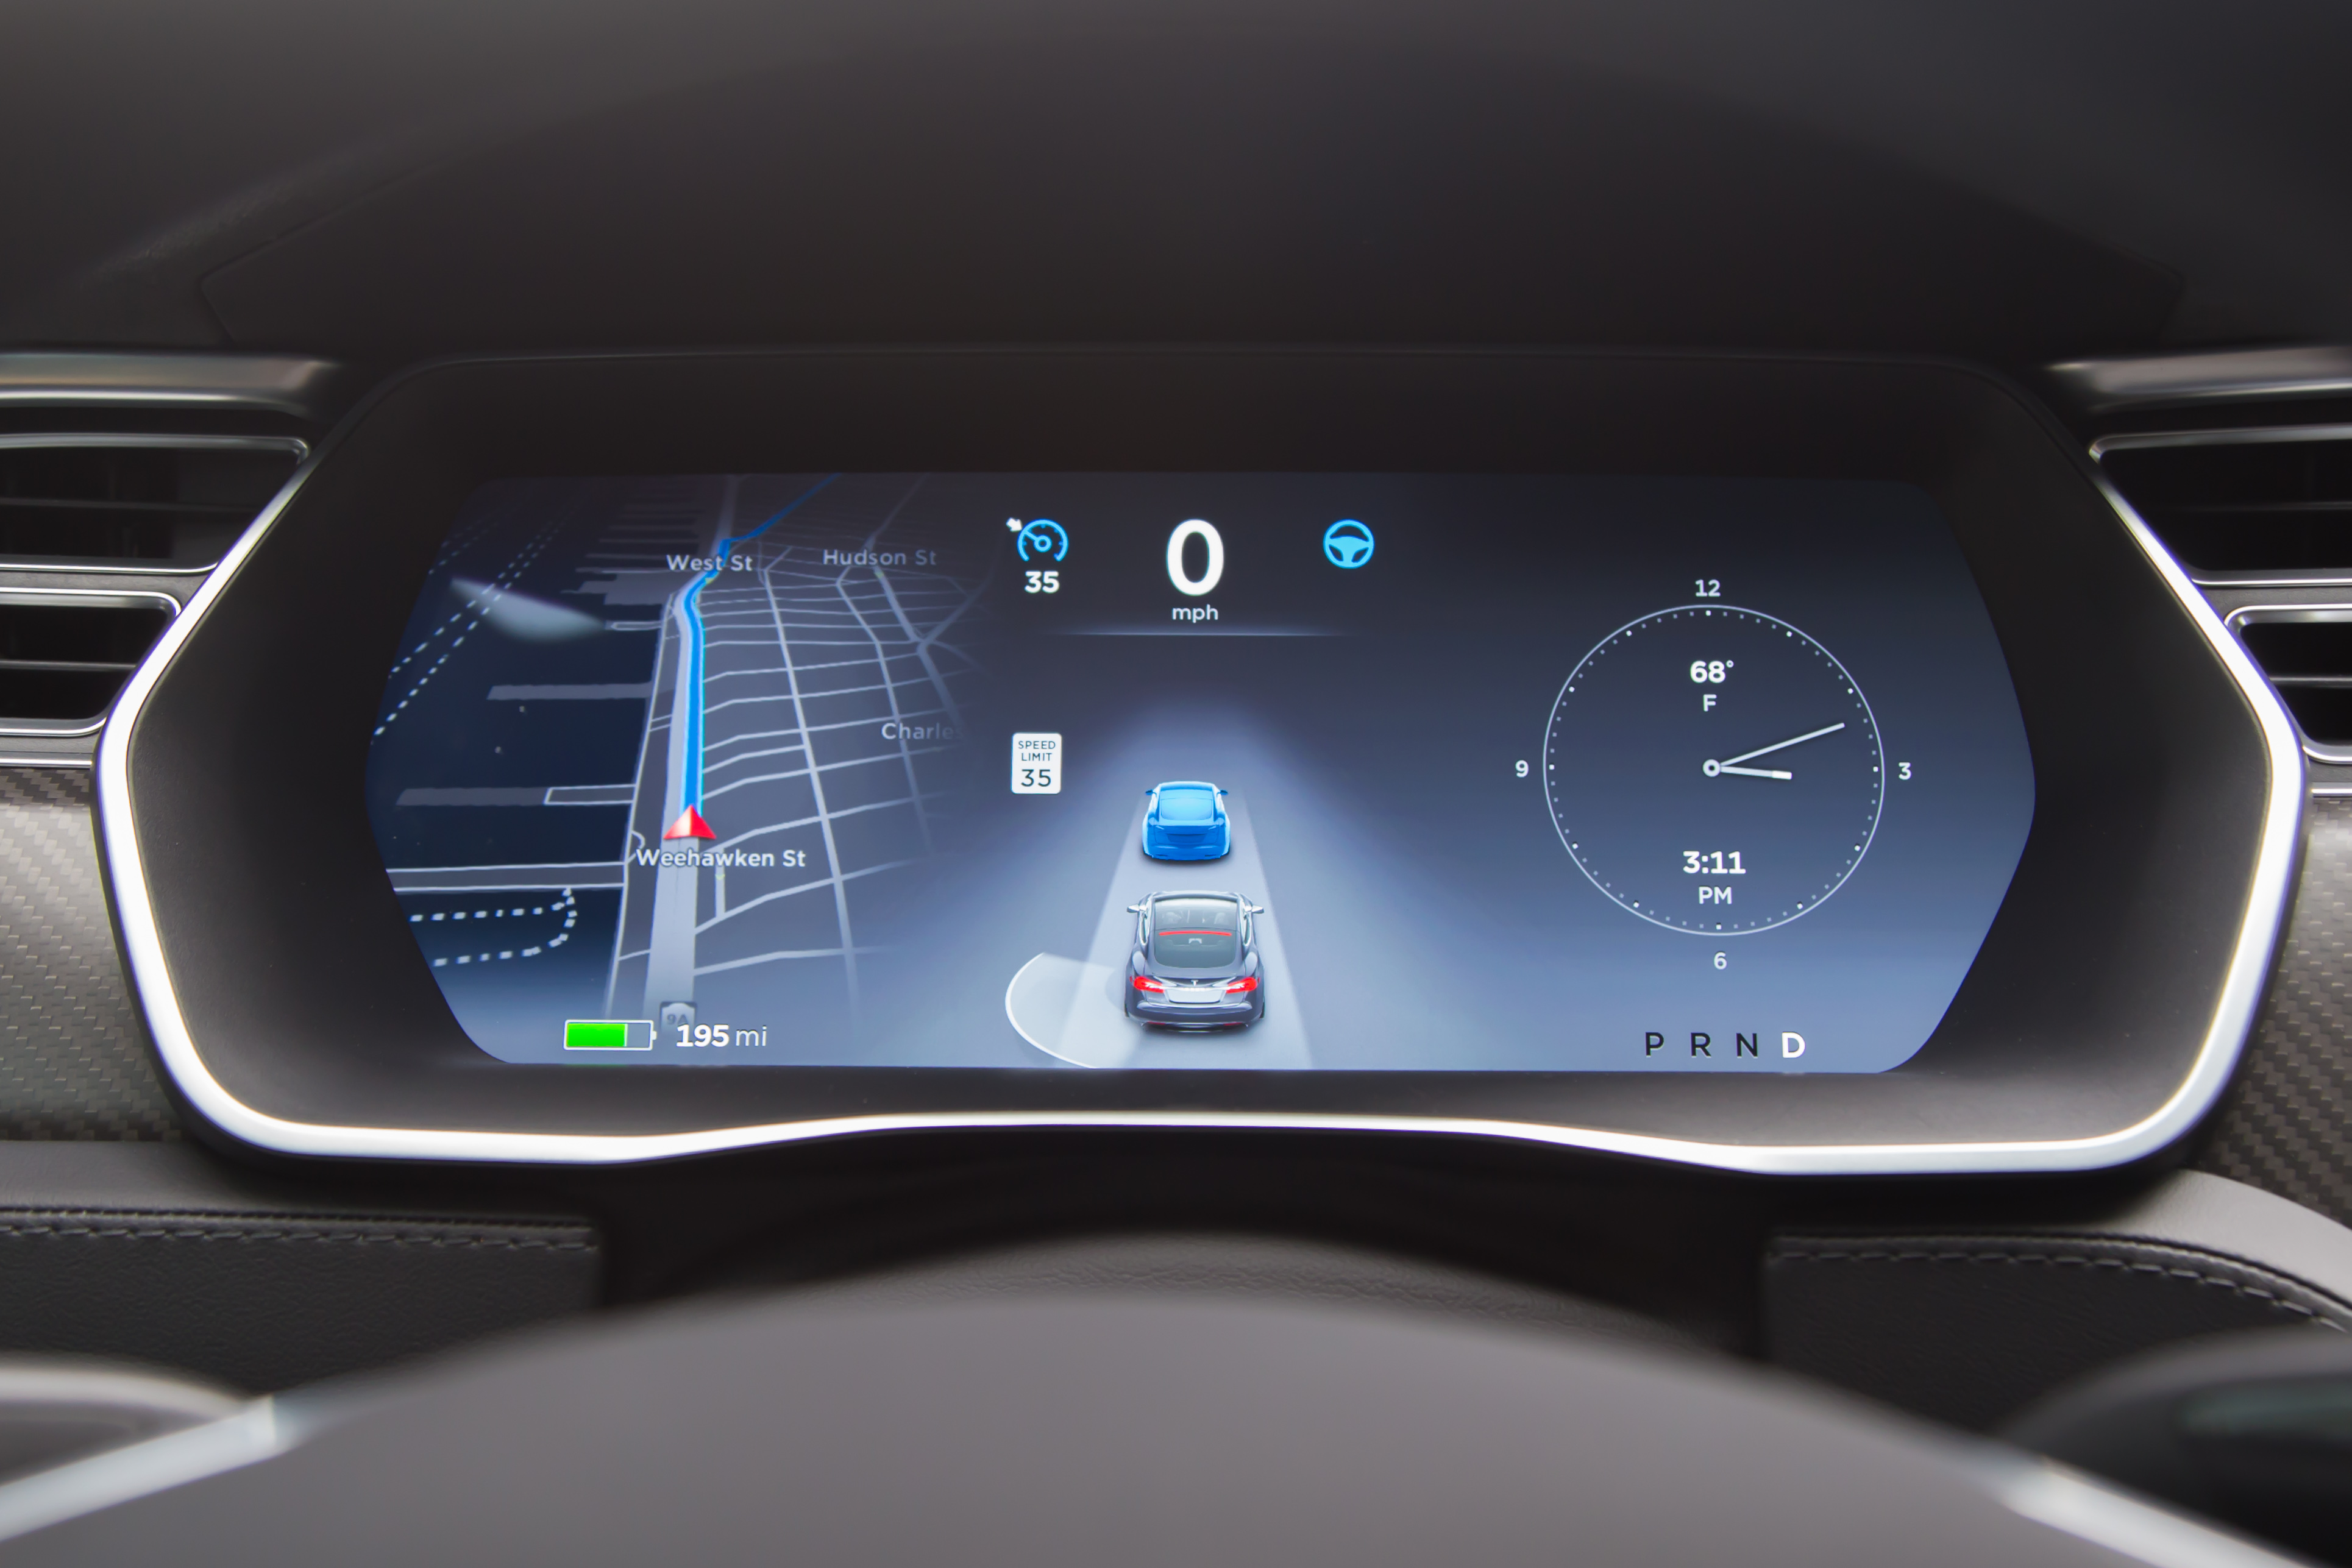 Tesla Is All About Autopilot And Radar In Firmware 8 Ars